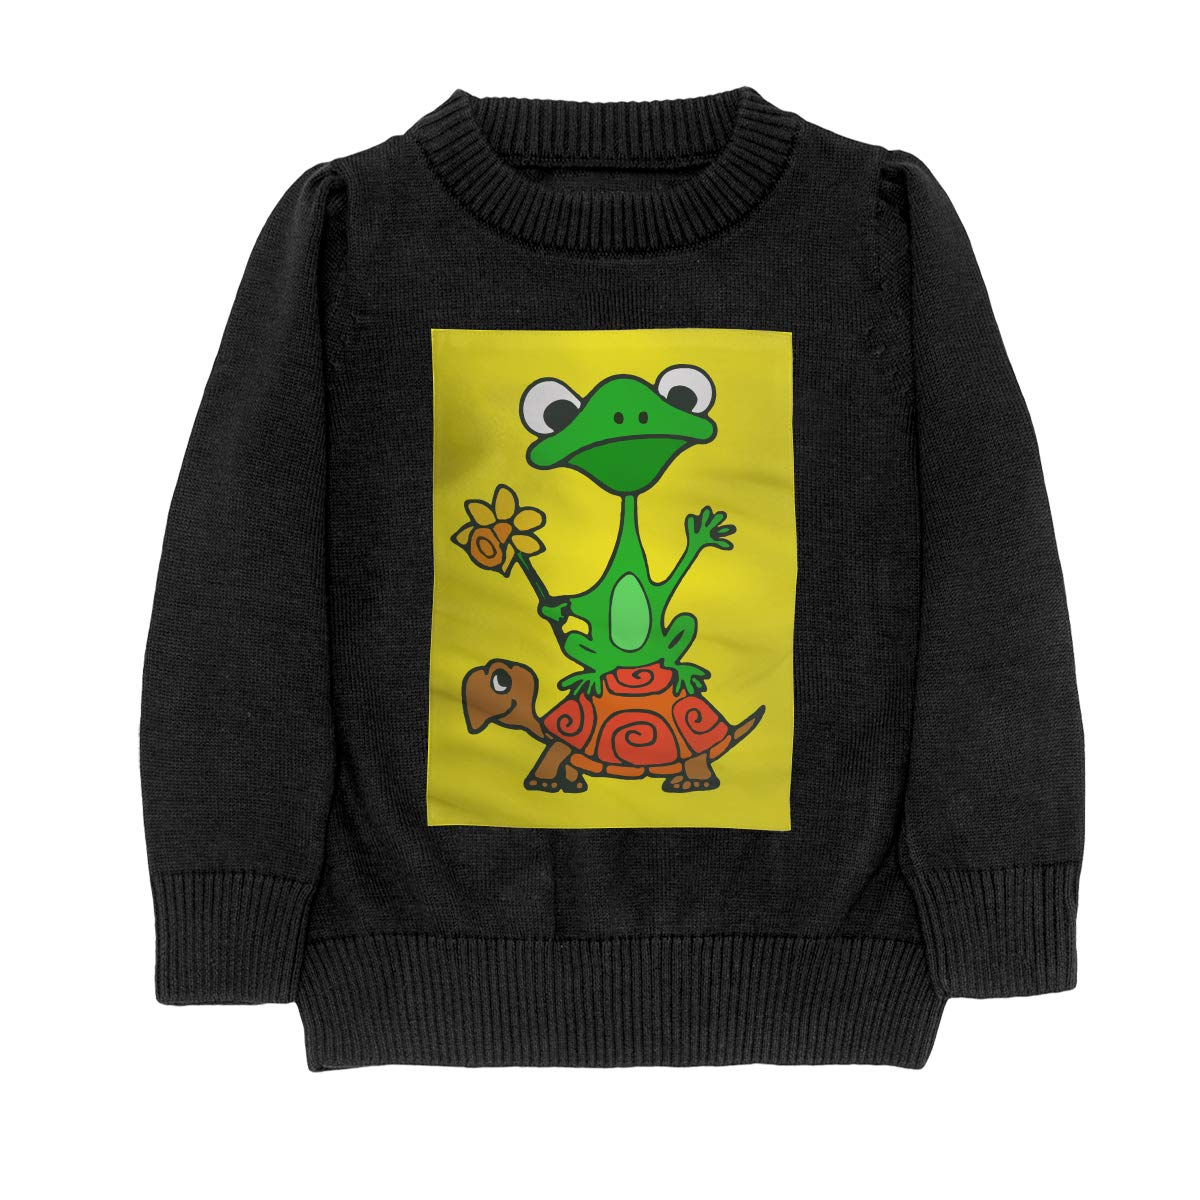 Funny Frog On Turtle Cool Adolescent Boys Girls Unisex Sweater Keep Warm